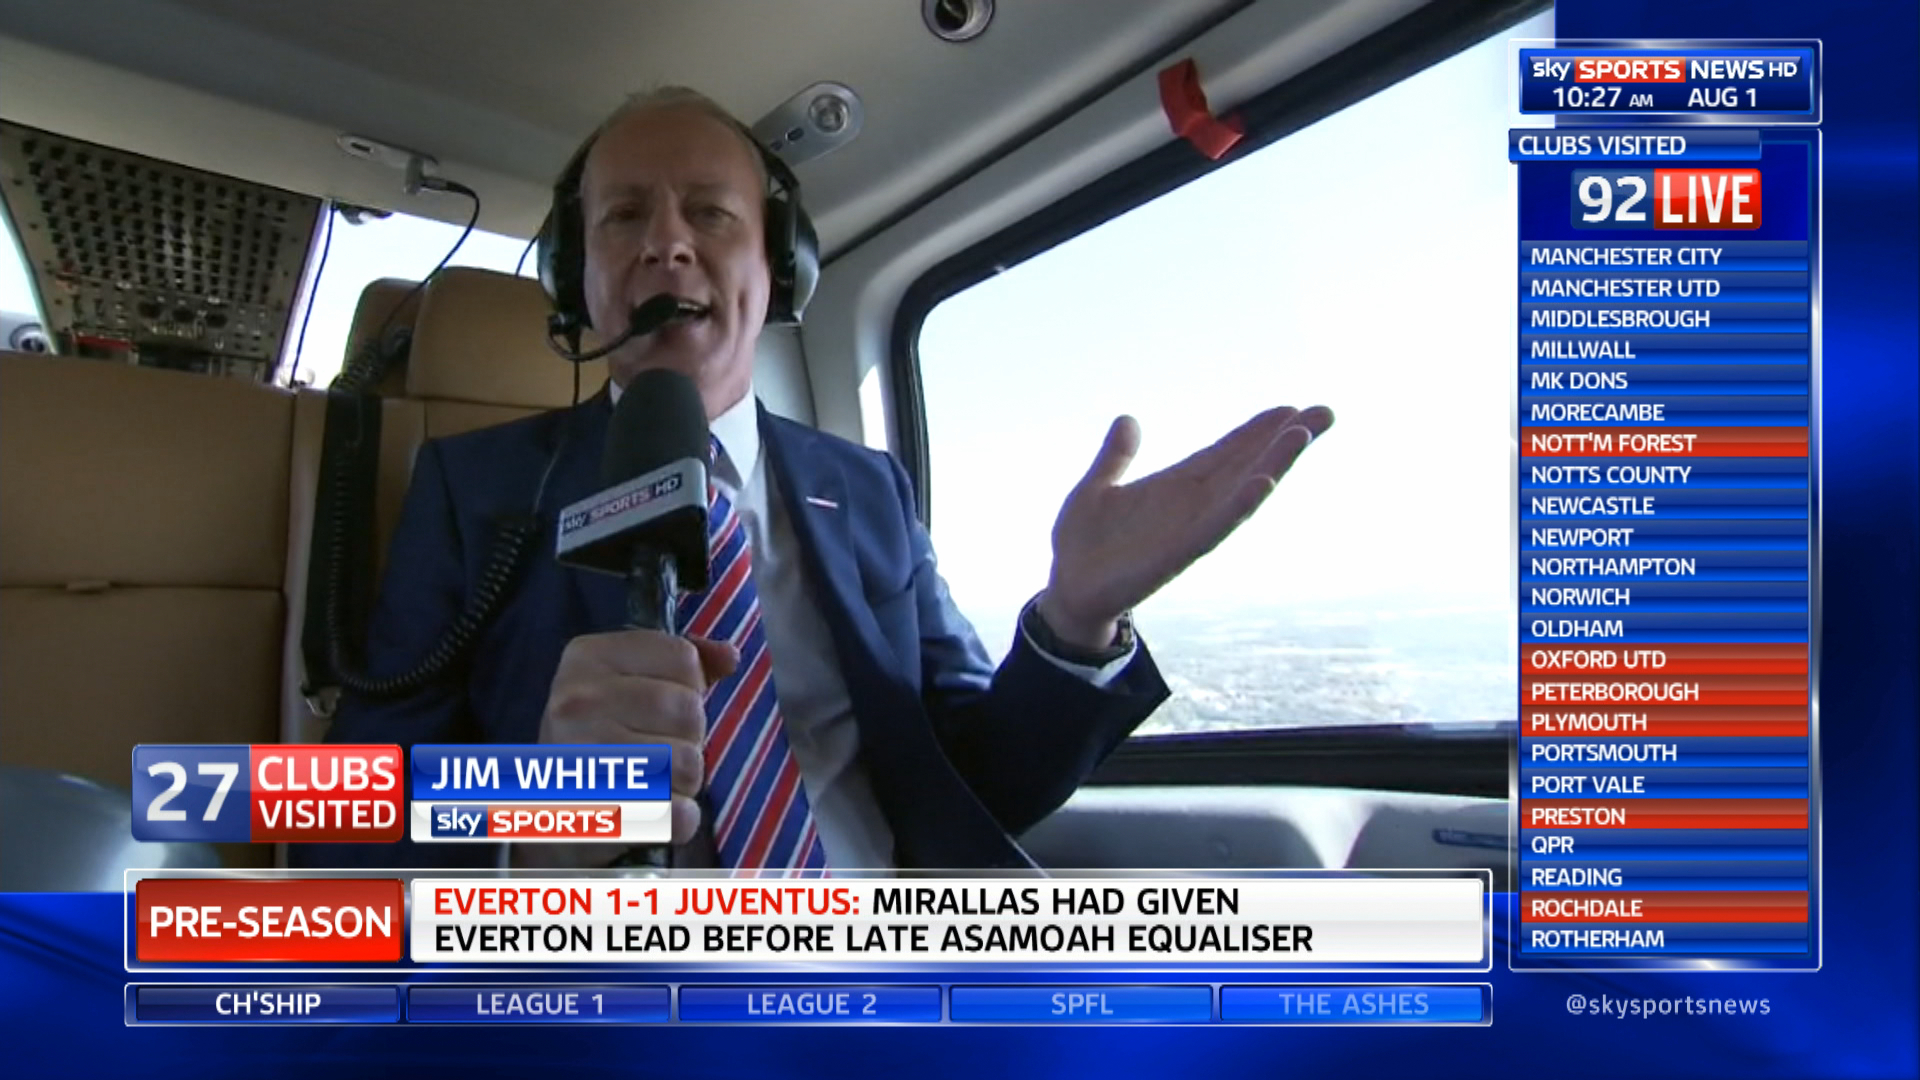 10 Things We Are Dreading The Thought Of Seeing On Sky